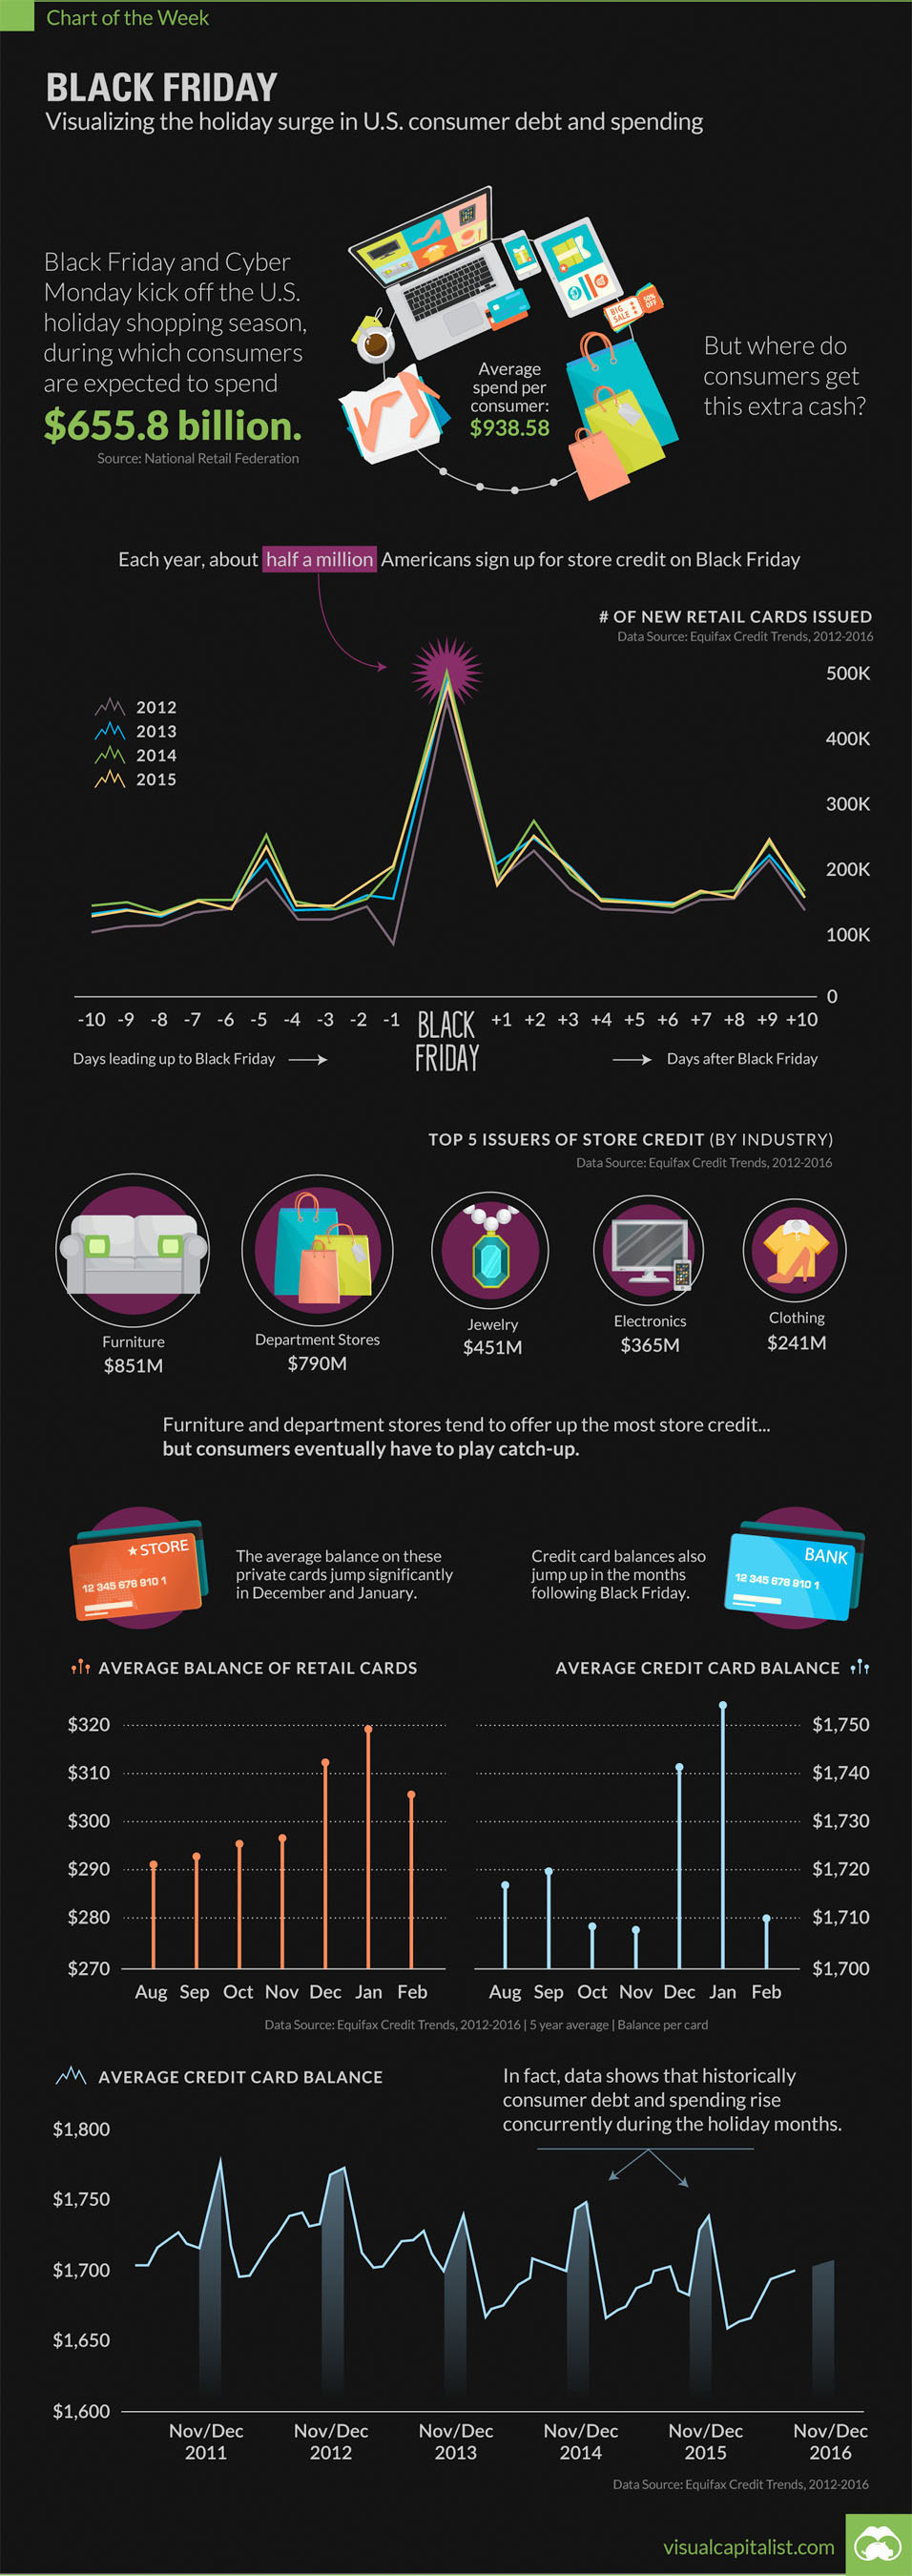 BLACK FRIDAY: Visualizing the holiday surge in U.S. consumer debt and spending (Equifax/Visual Capitalist)